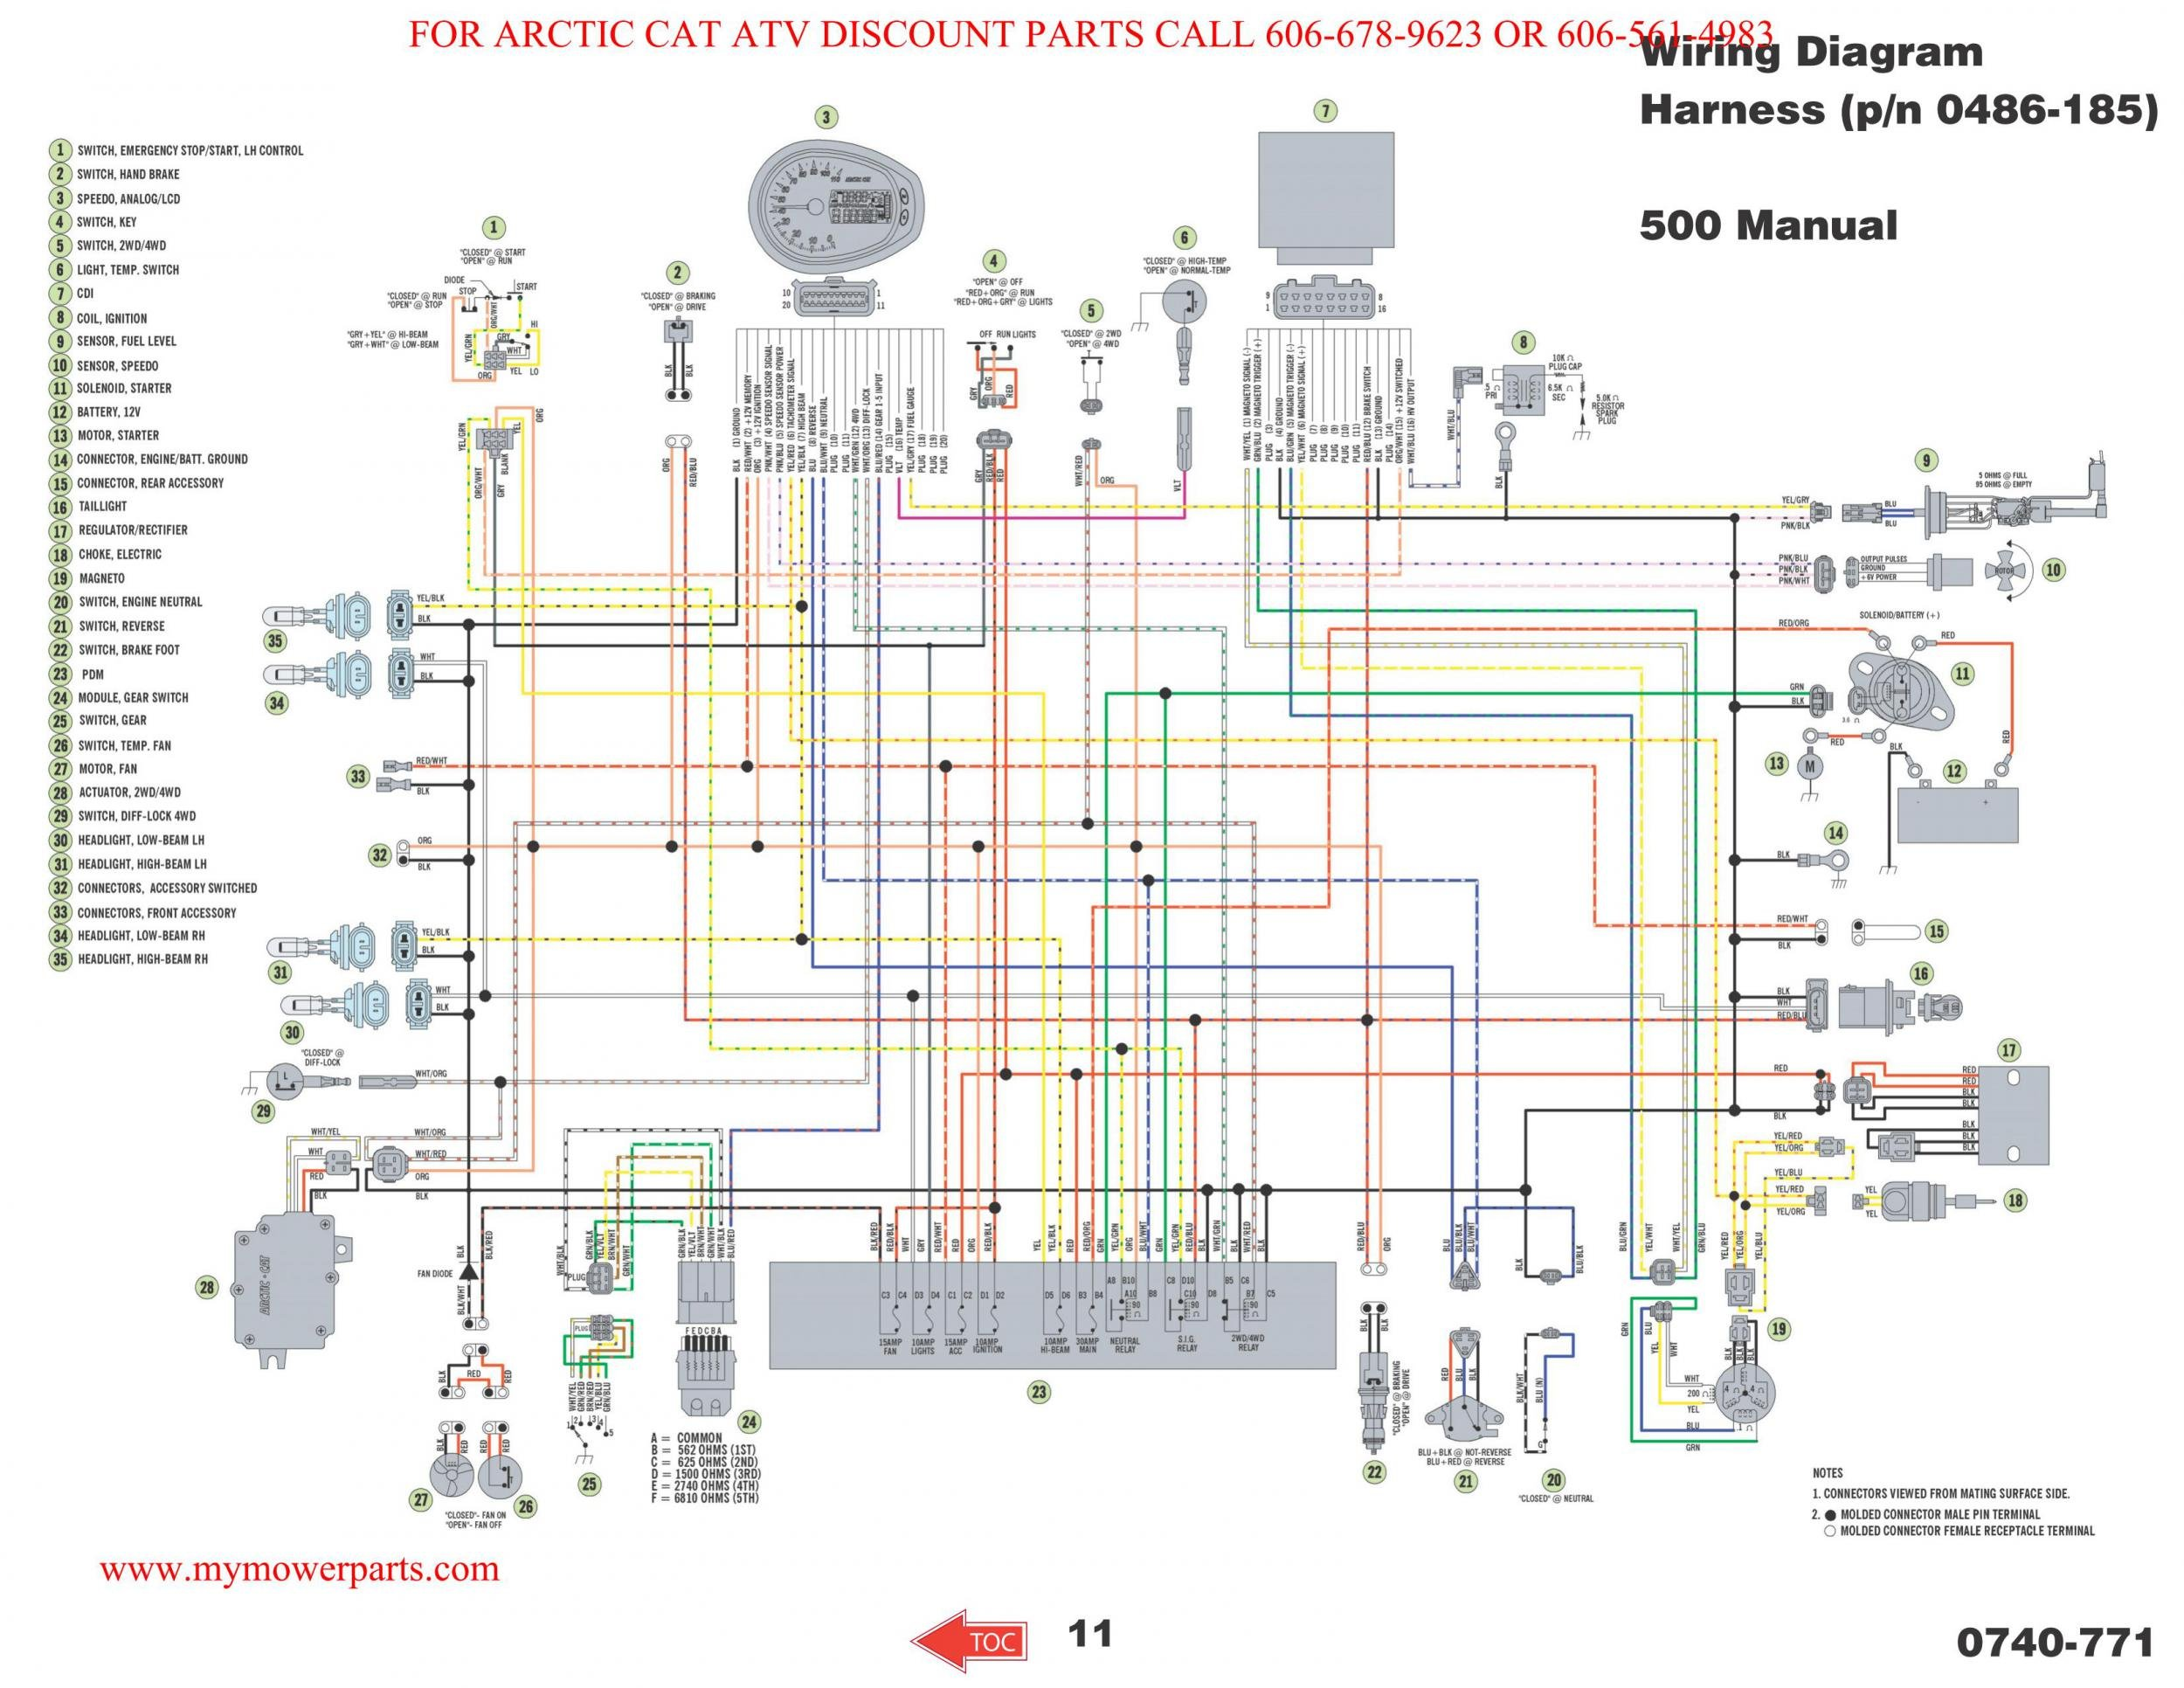 Wiring Diagram Arctic Cat Forum